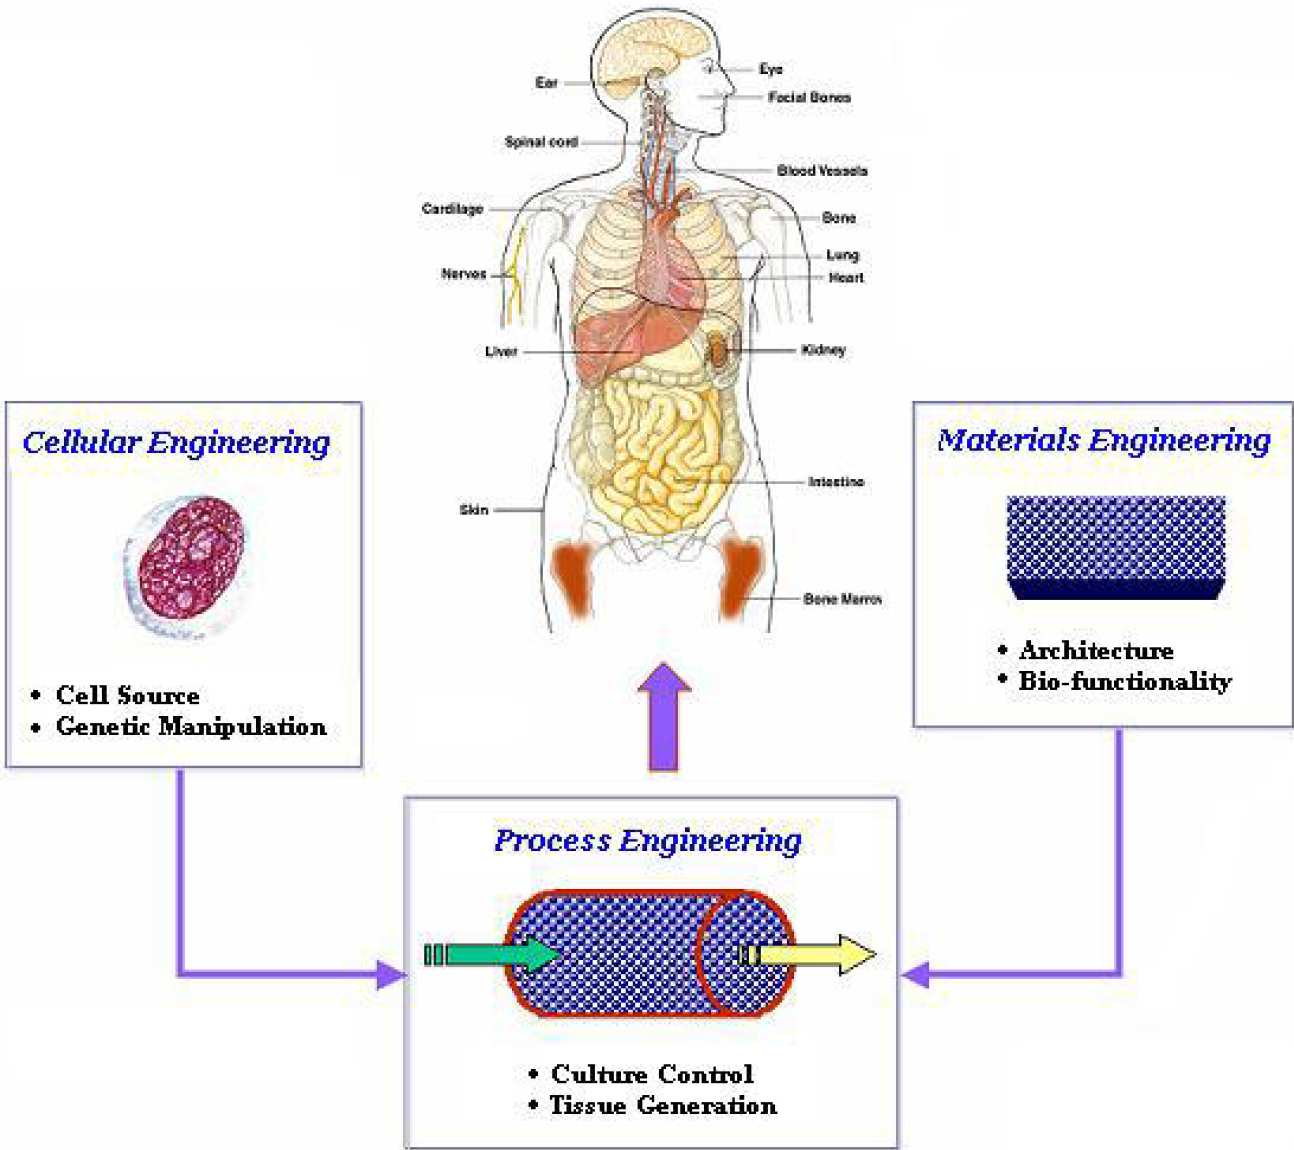 Flow diagram of tissue engineering